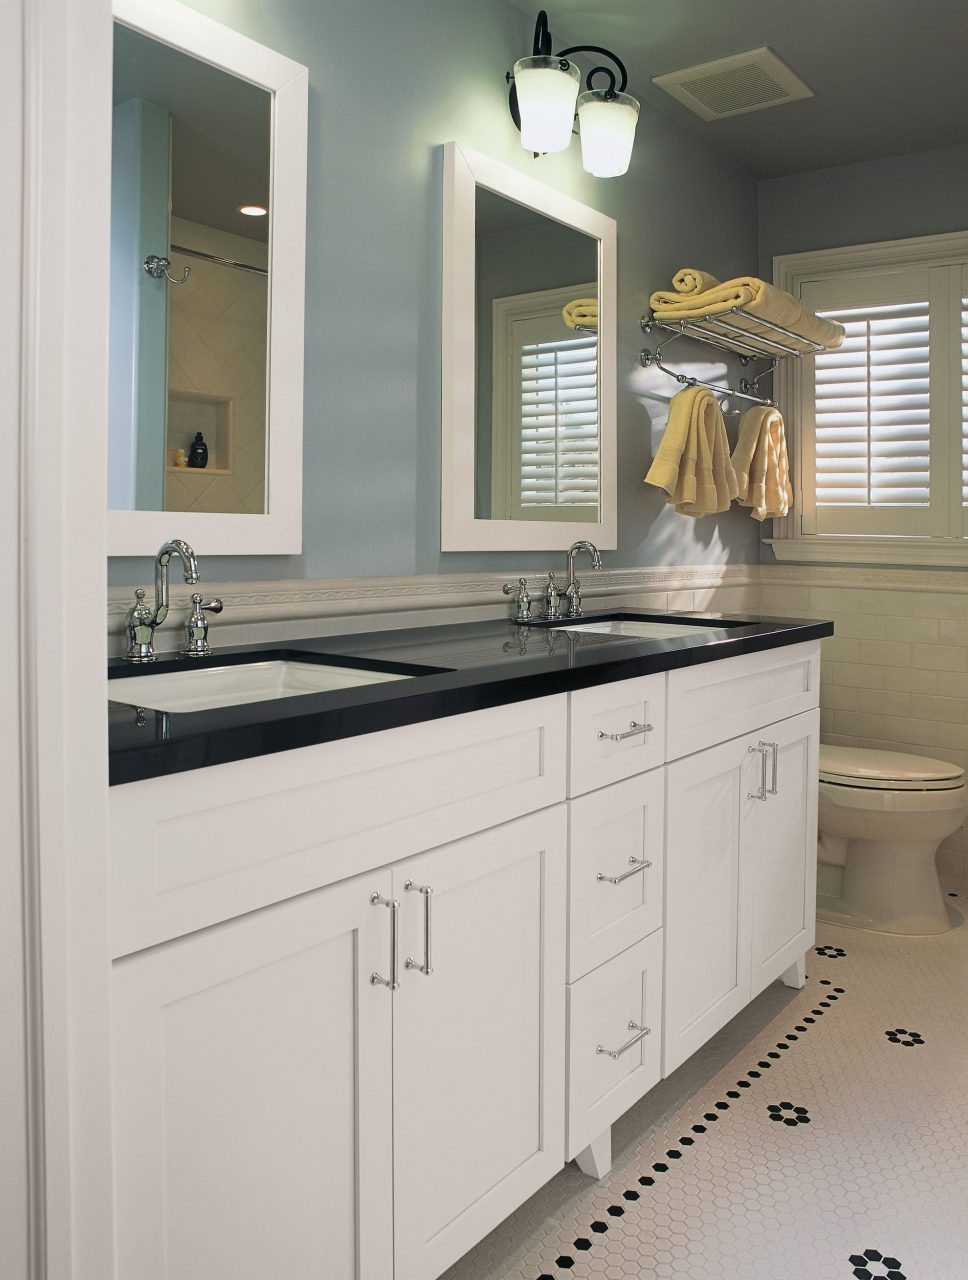 Bathroom Ideas With White Cabinets Imagestc